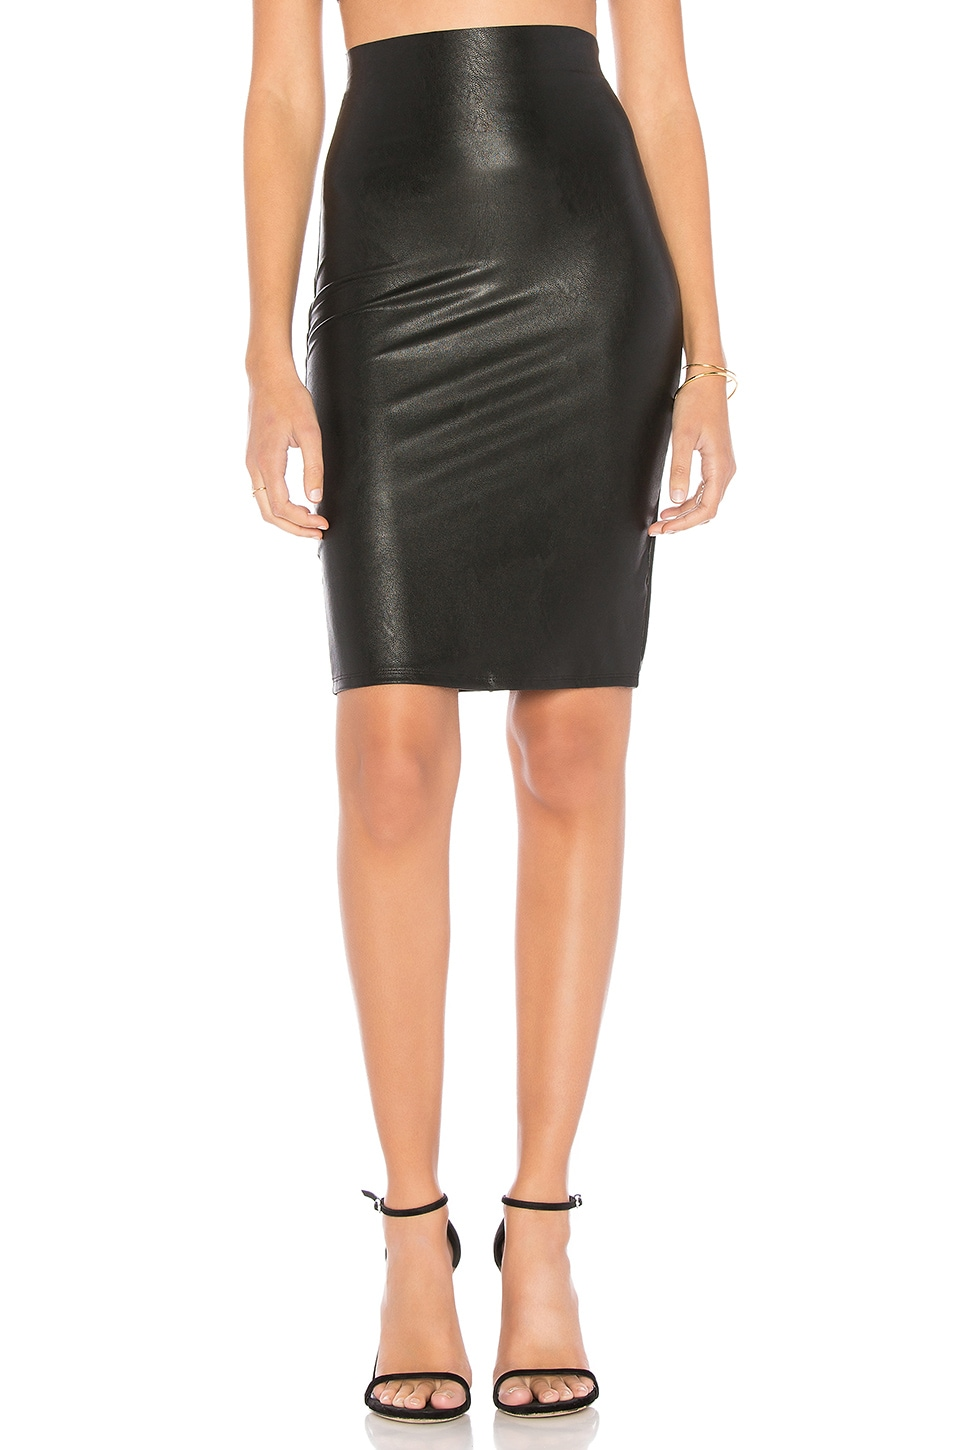 Perfect Pencil Faux Leather Skirt                   Commando                                                                                                                             CA$ 128.16 2